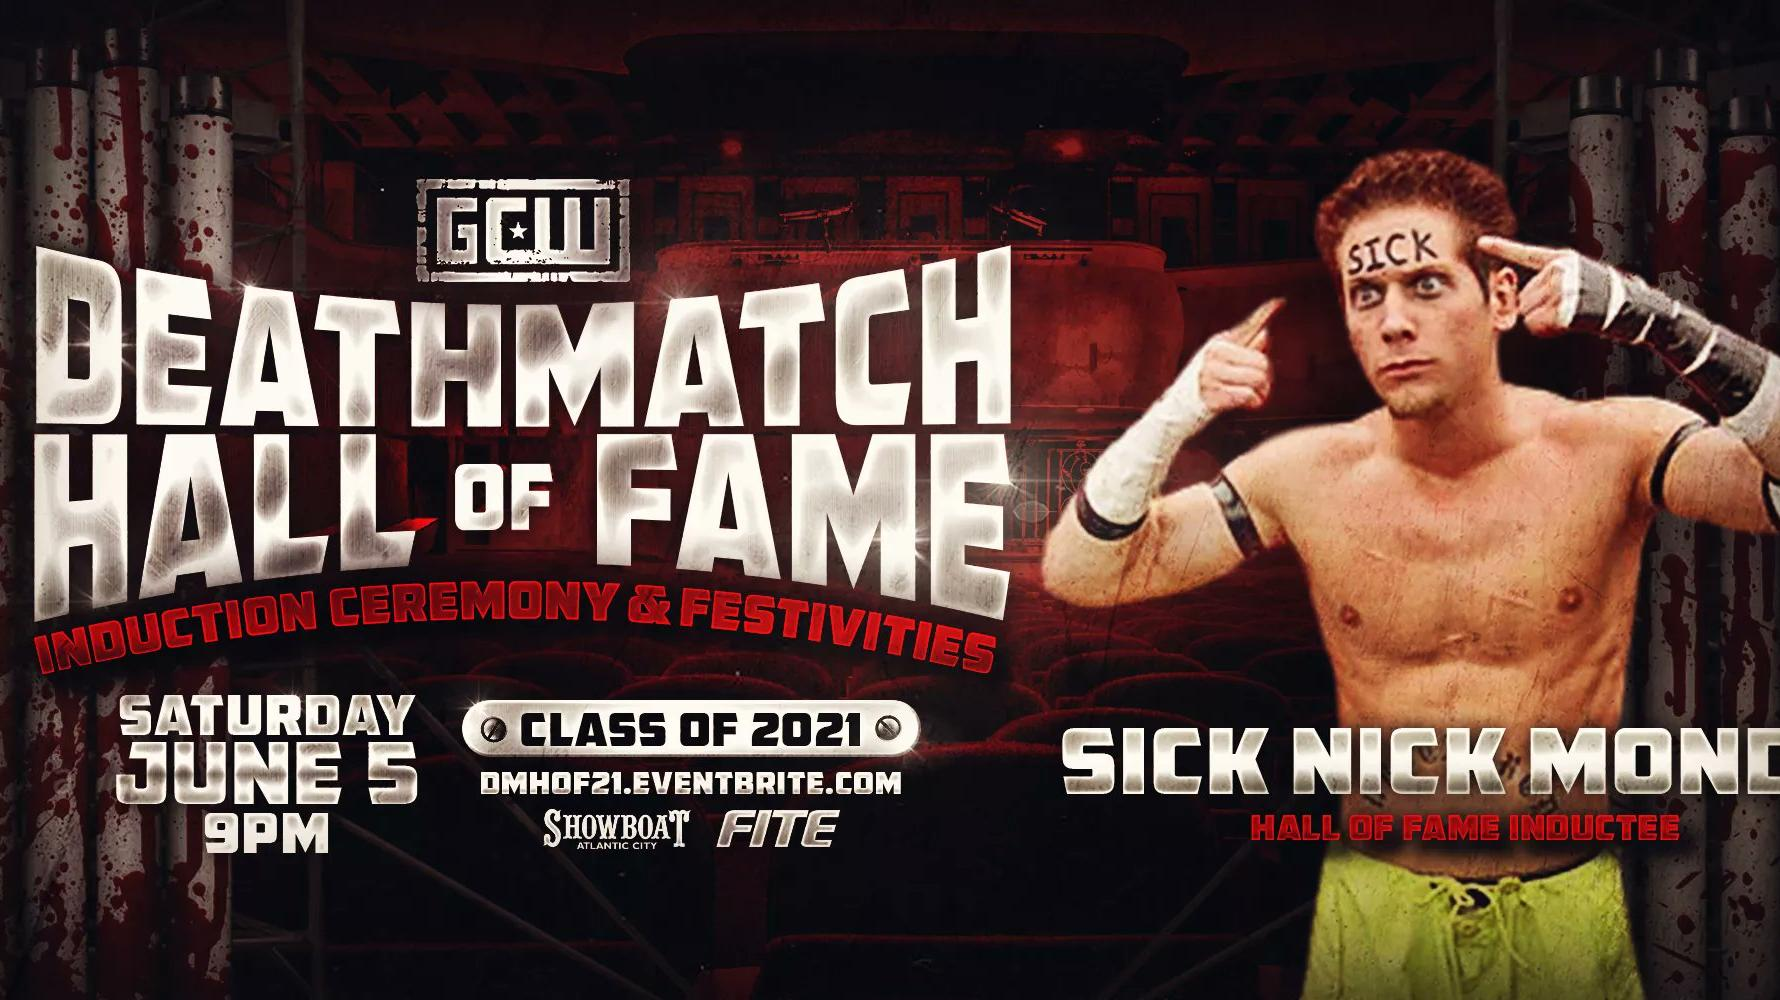 'Sick' Nick Mondo To Be Inducted Into GCW Deathmatch Hall Of Fame